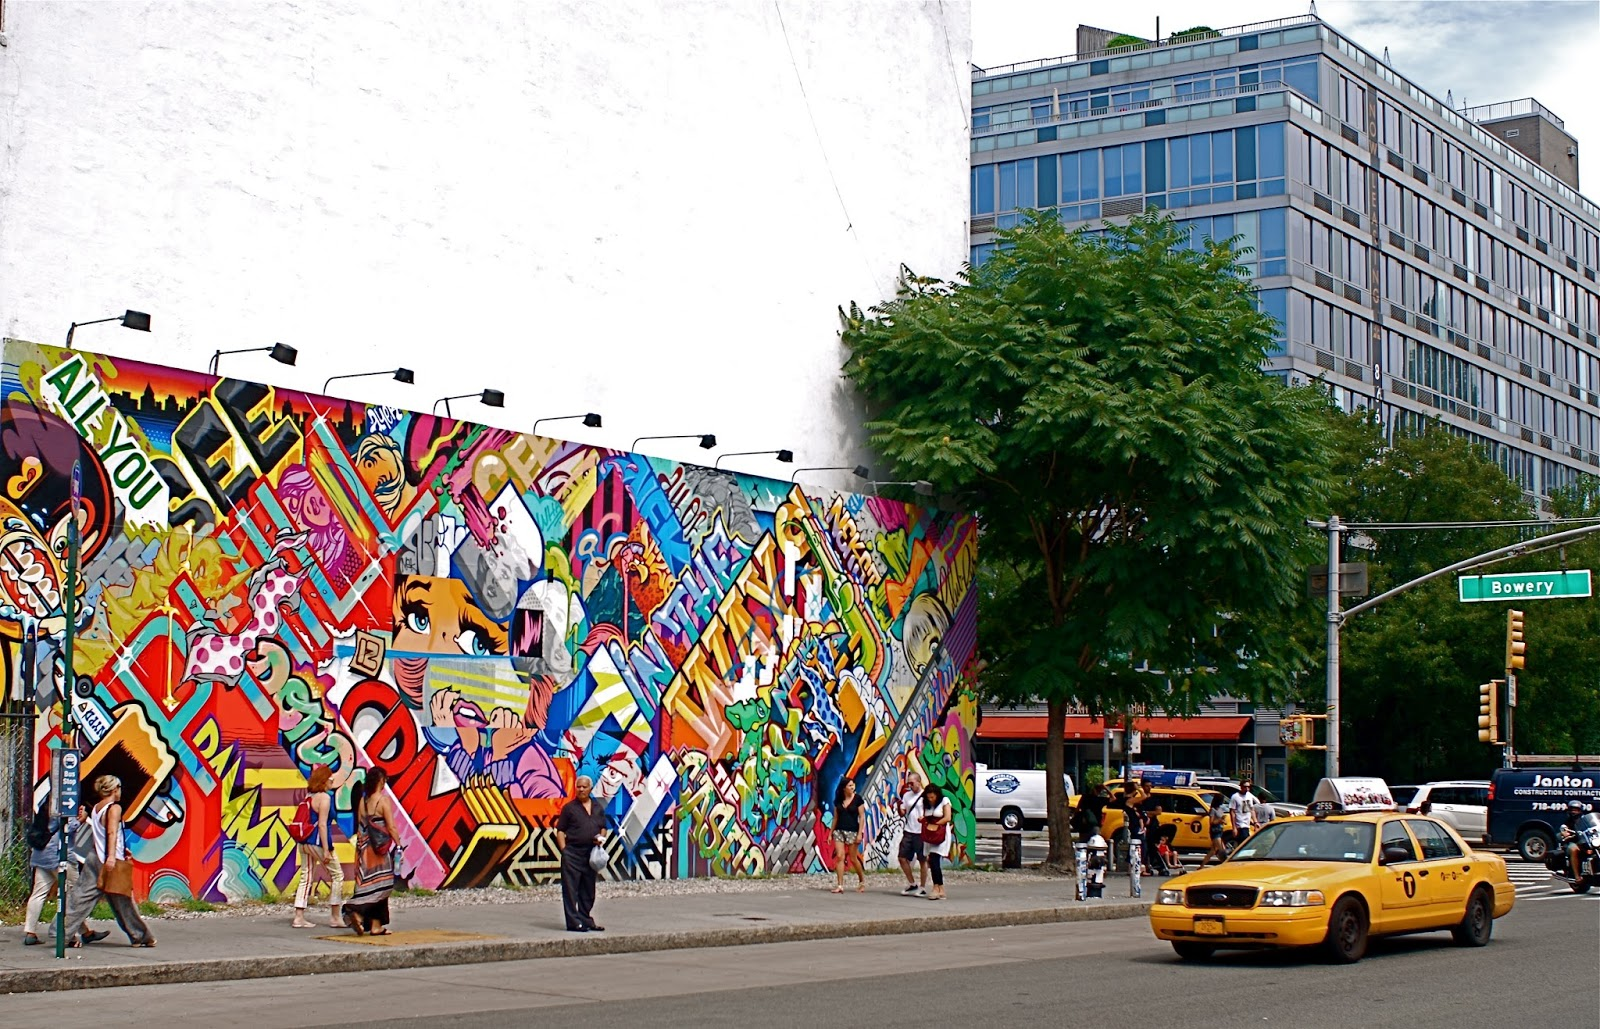 Nyc nyc revok and pose mural at bowery and houston for Bowery mural nyc